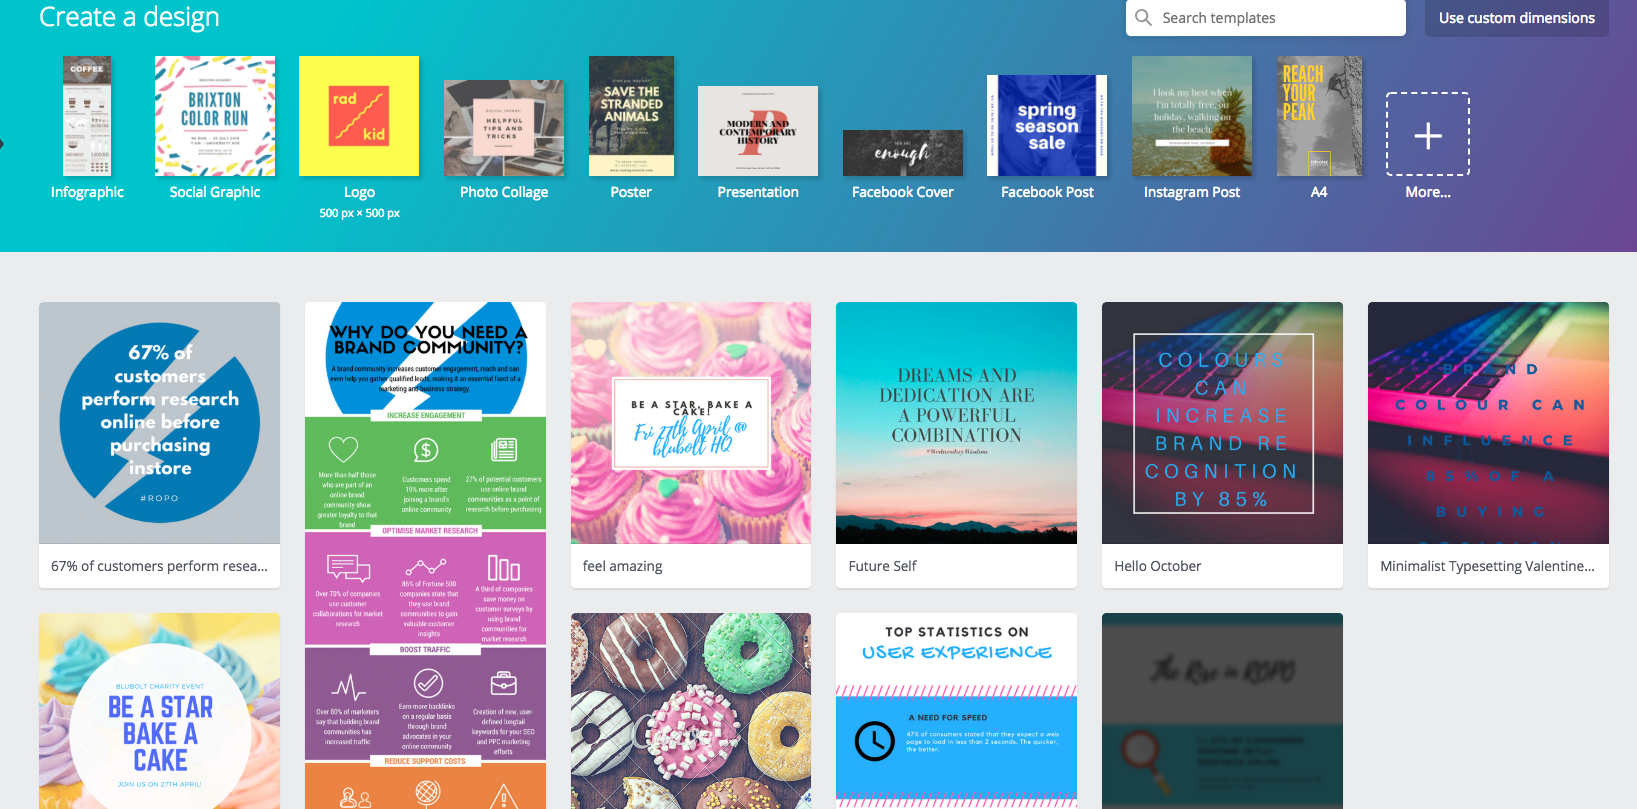 Image showing Canva home screen, a fantastic e-commerce marketing tool for designing custom graphics.